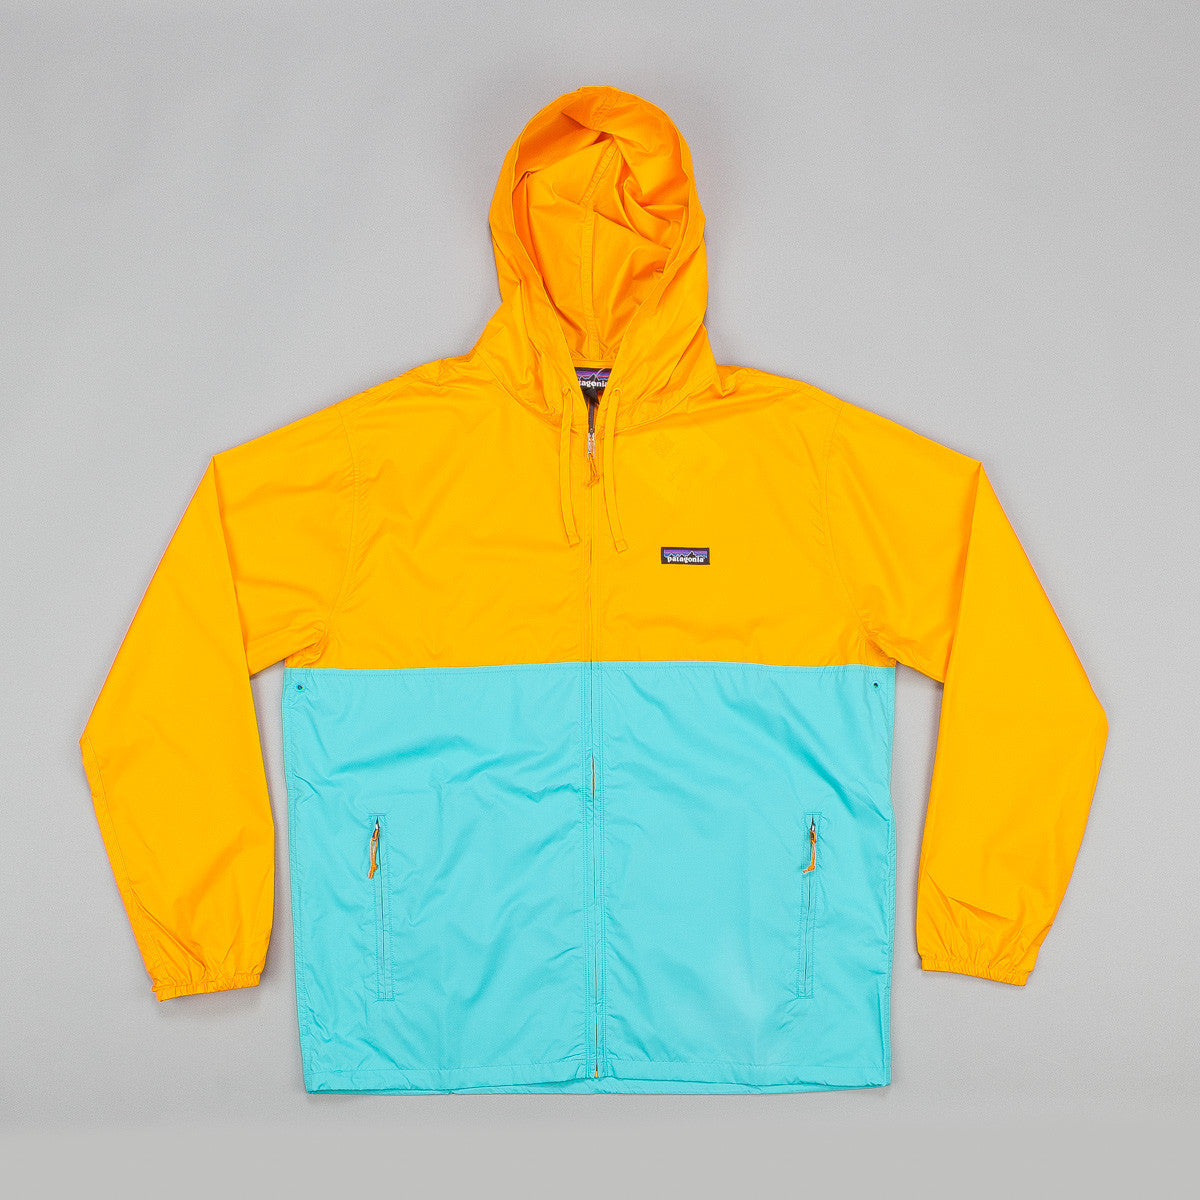 Patagonia Light and Variable Jacket - Howling Turquoise